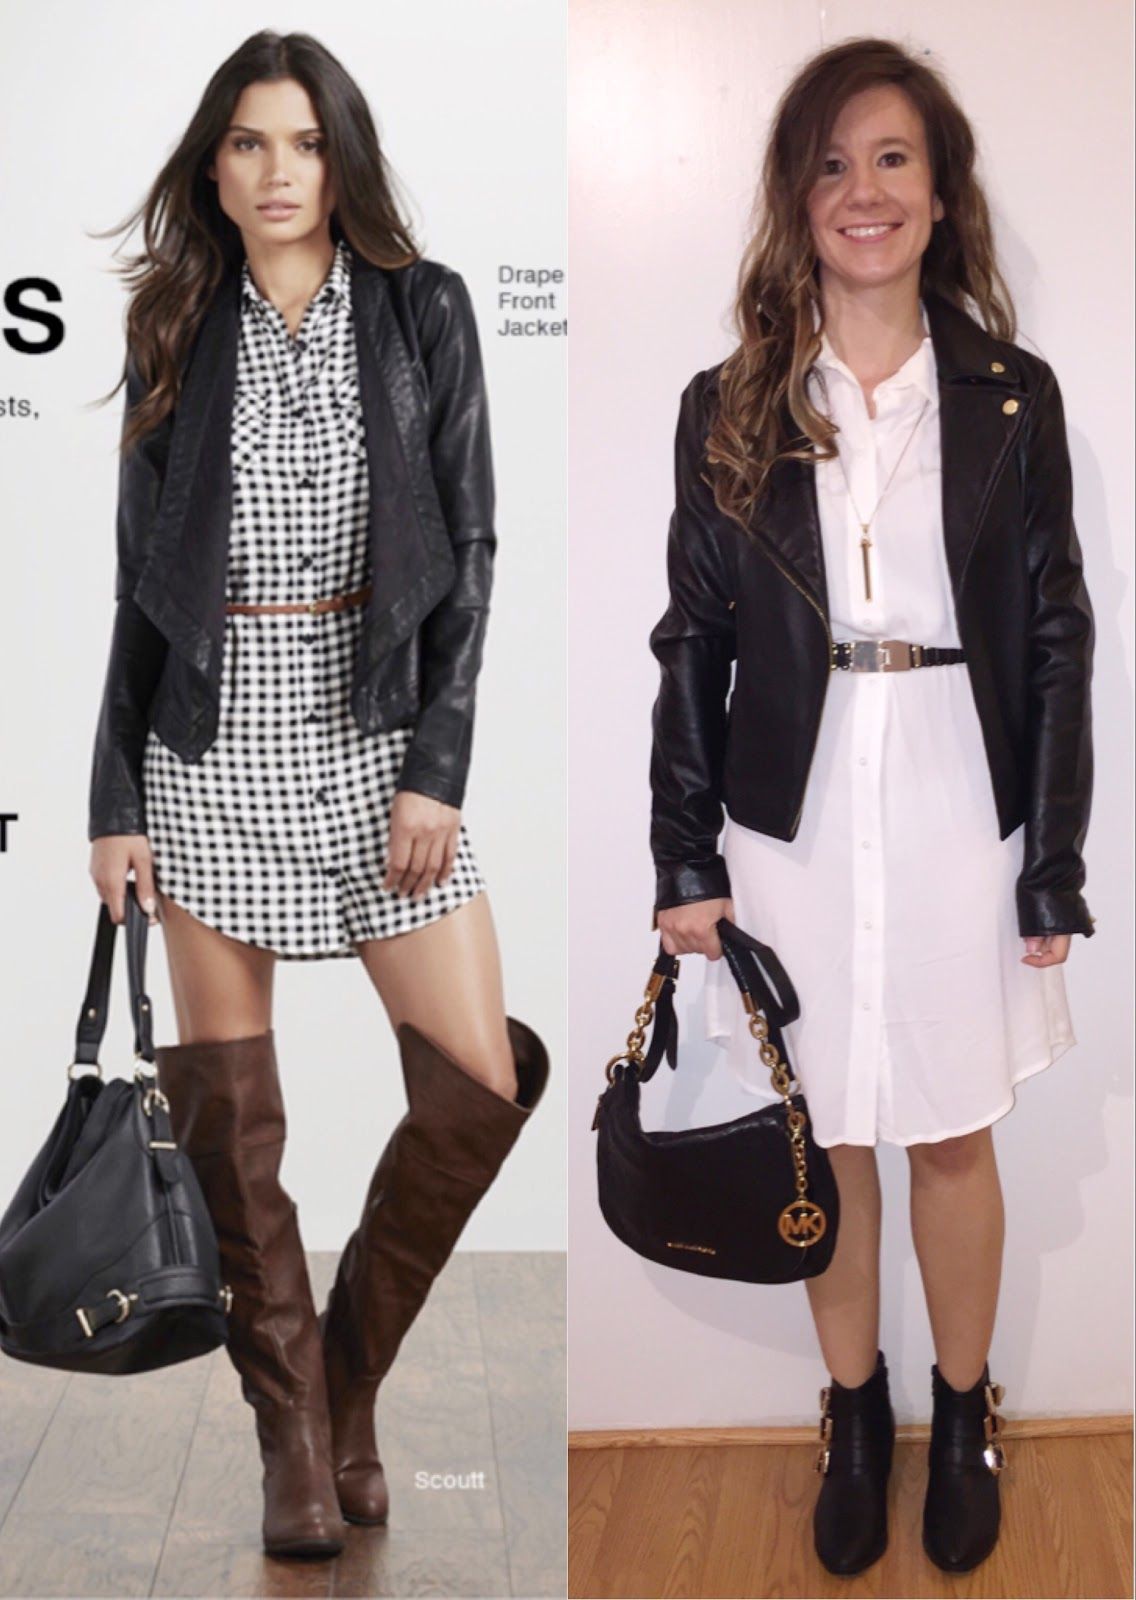 H&M White Shirt Dress Victoria's Secret Black Leather Jacket Stella & Dot Rebel Pendant Necklace